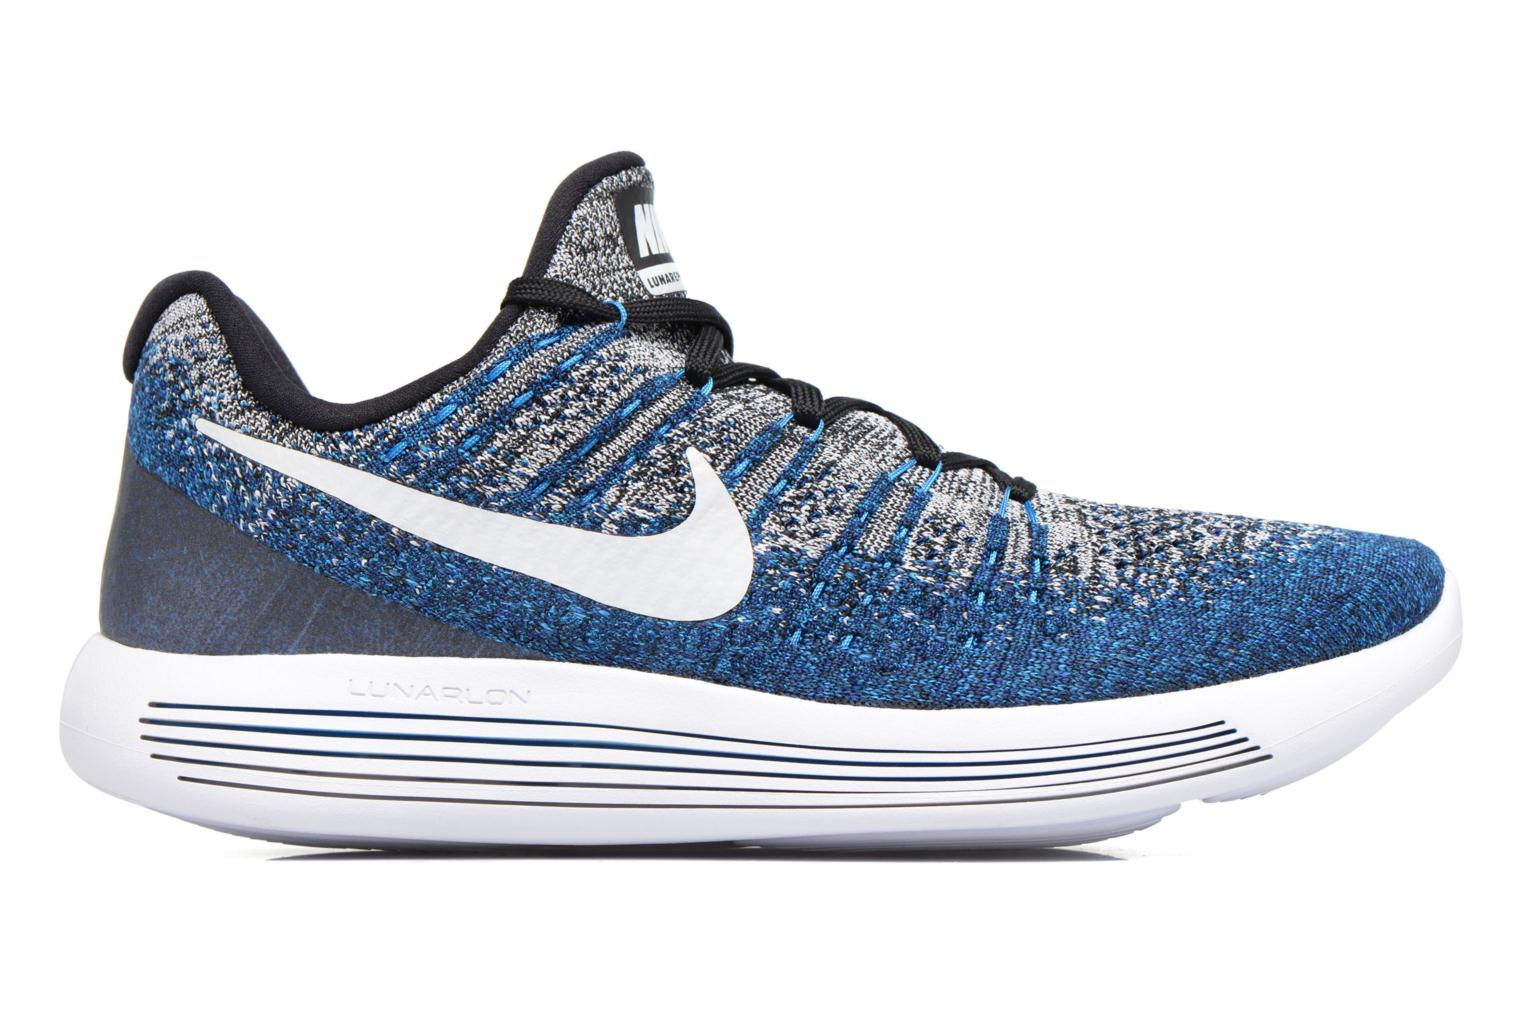 Nike Lunarepic Low Flyknit 2 Black/White-Photo Blue-Deep Royal Blue